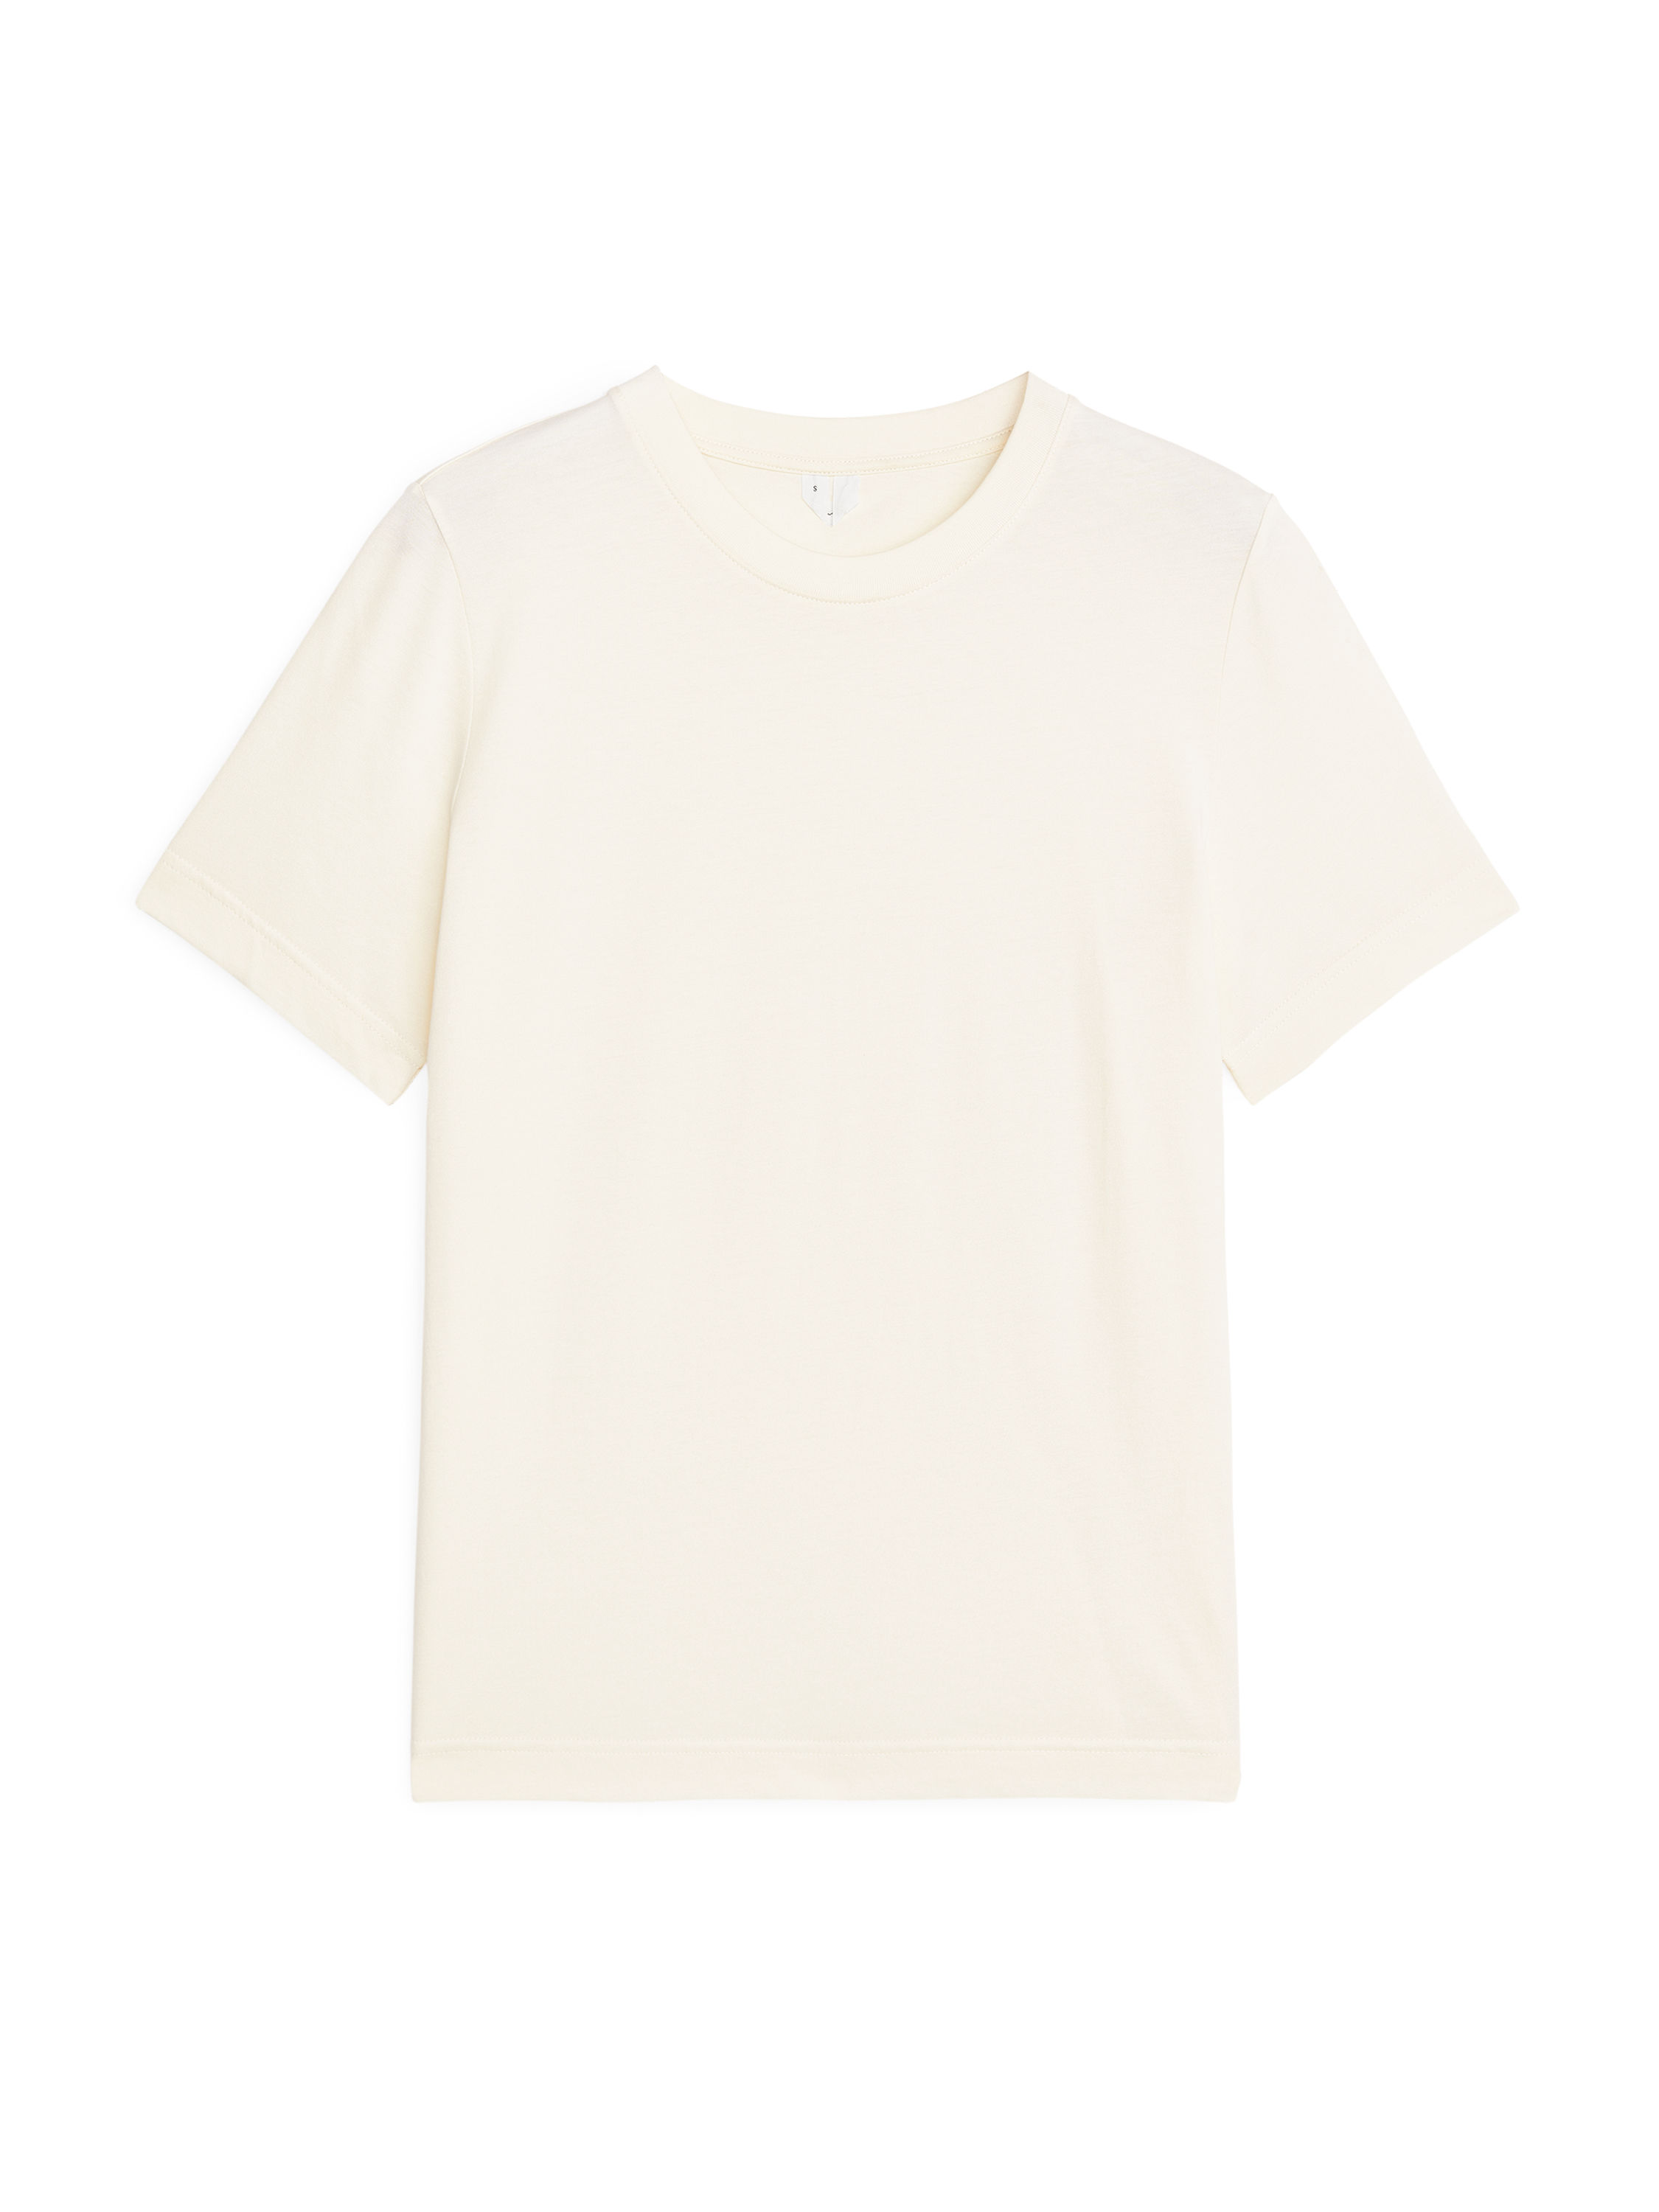 Fabric Swatch image of Arket crew-neck t-shirt in white